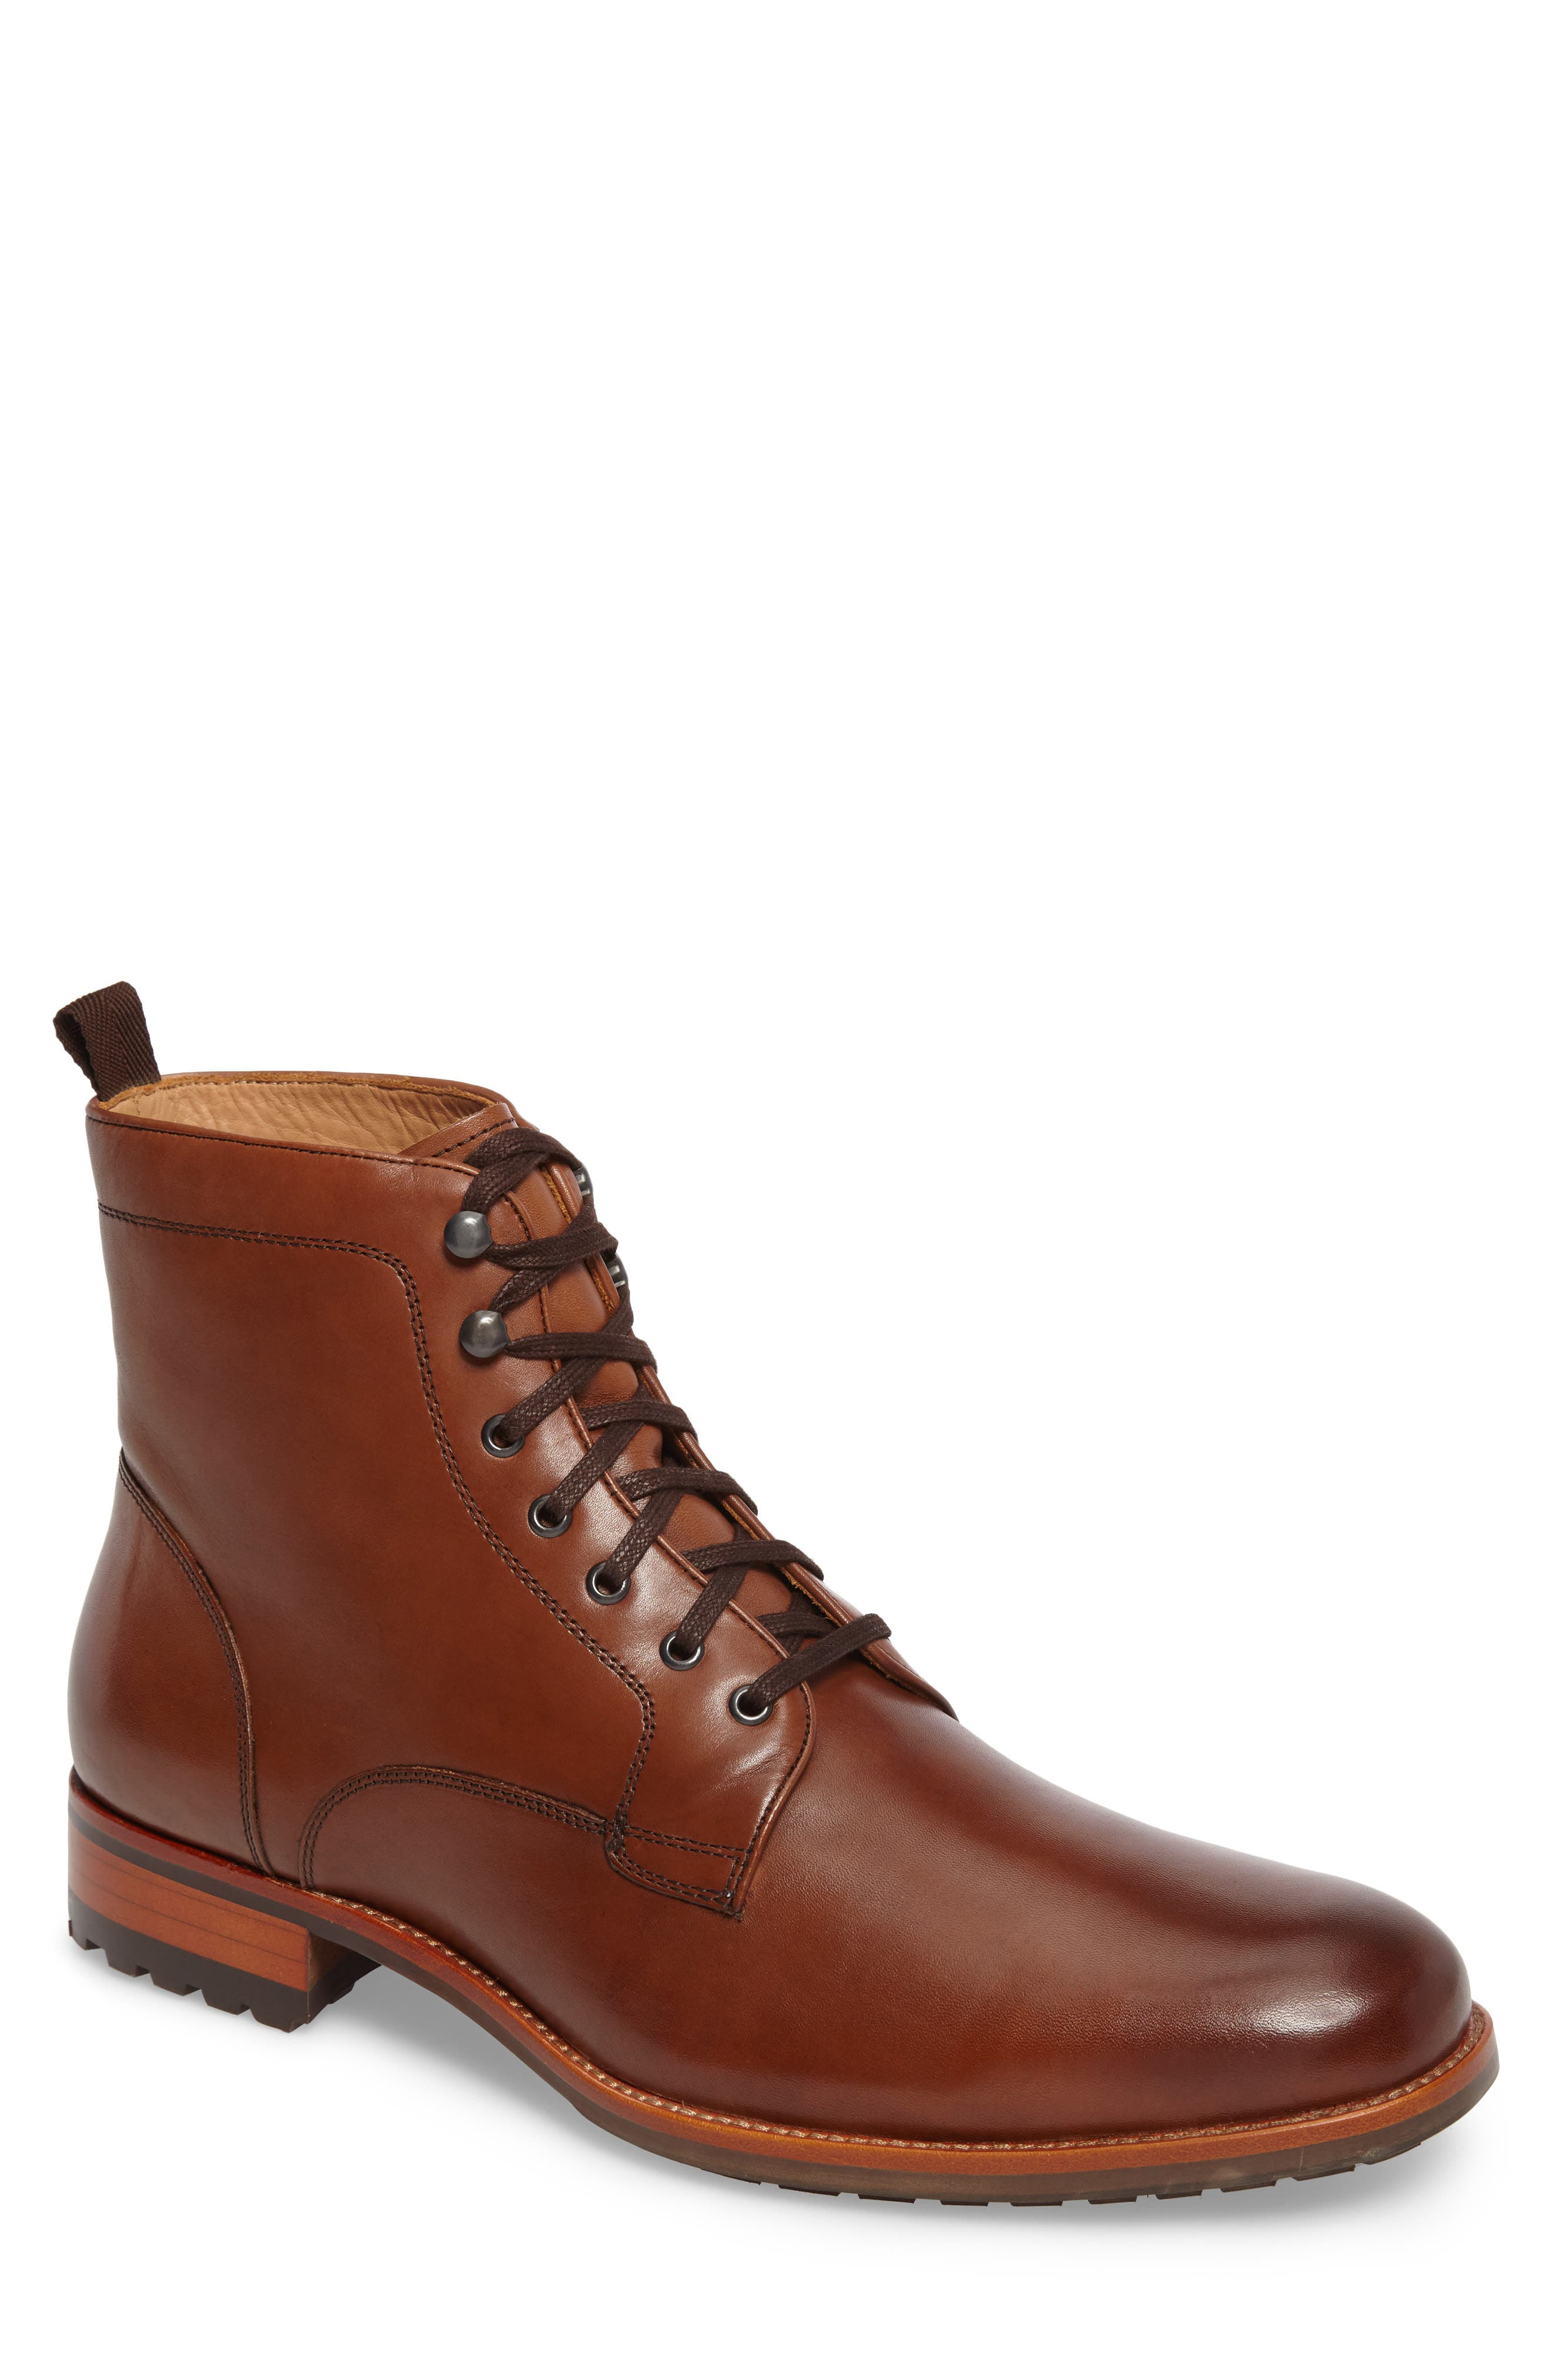 Axeford Plain Toe Boot,                         Main,                         color, Luggage Leather